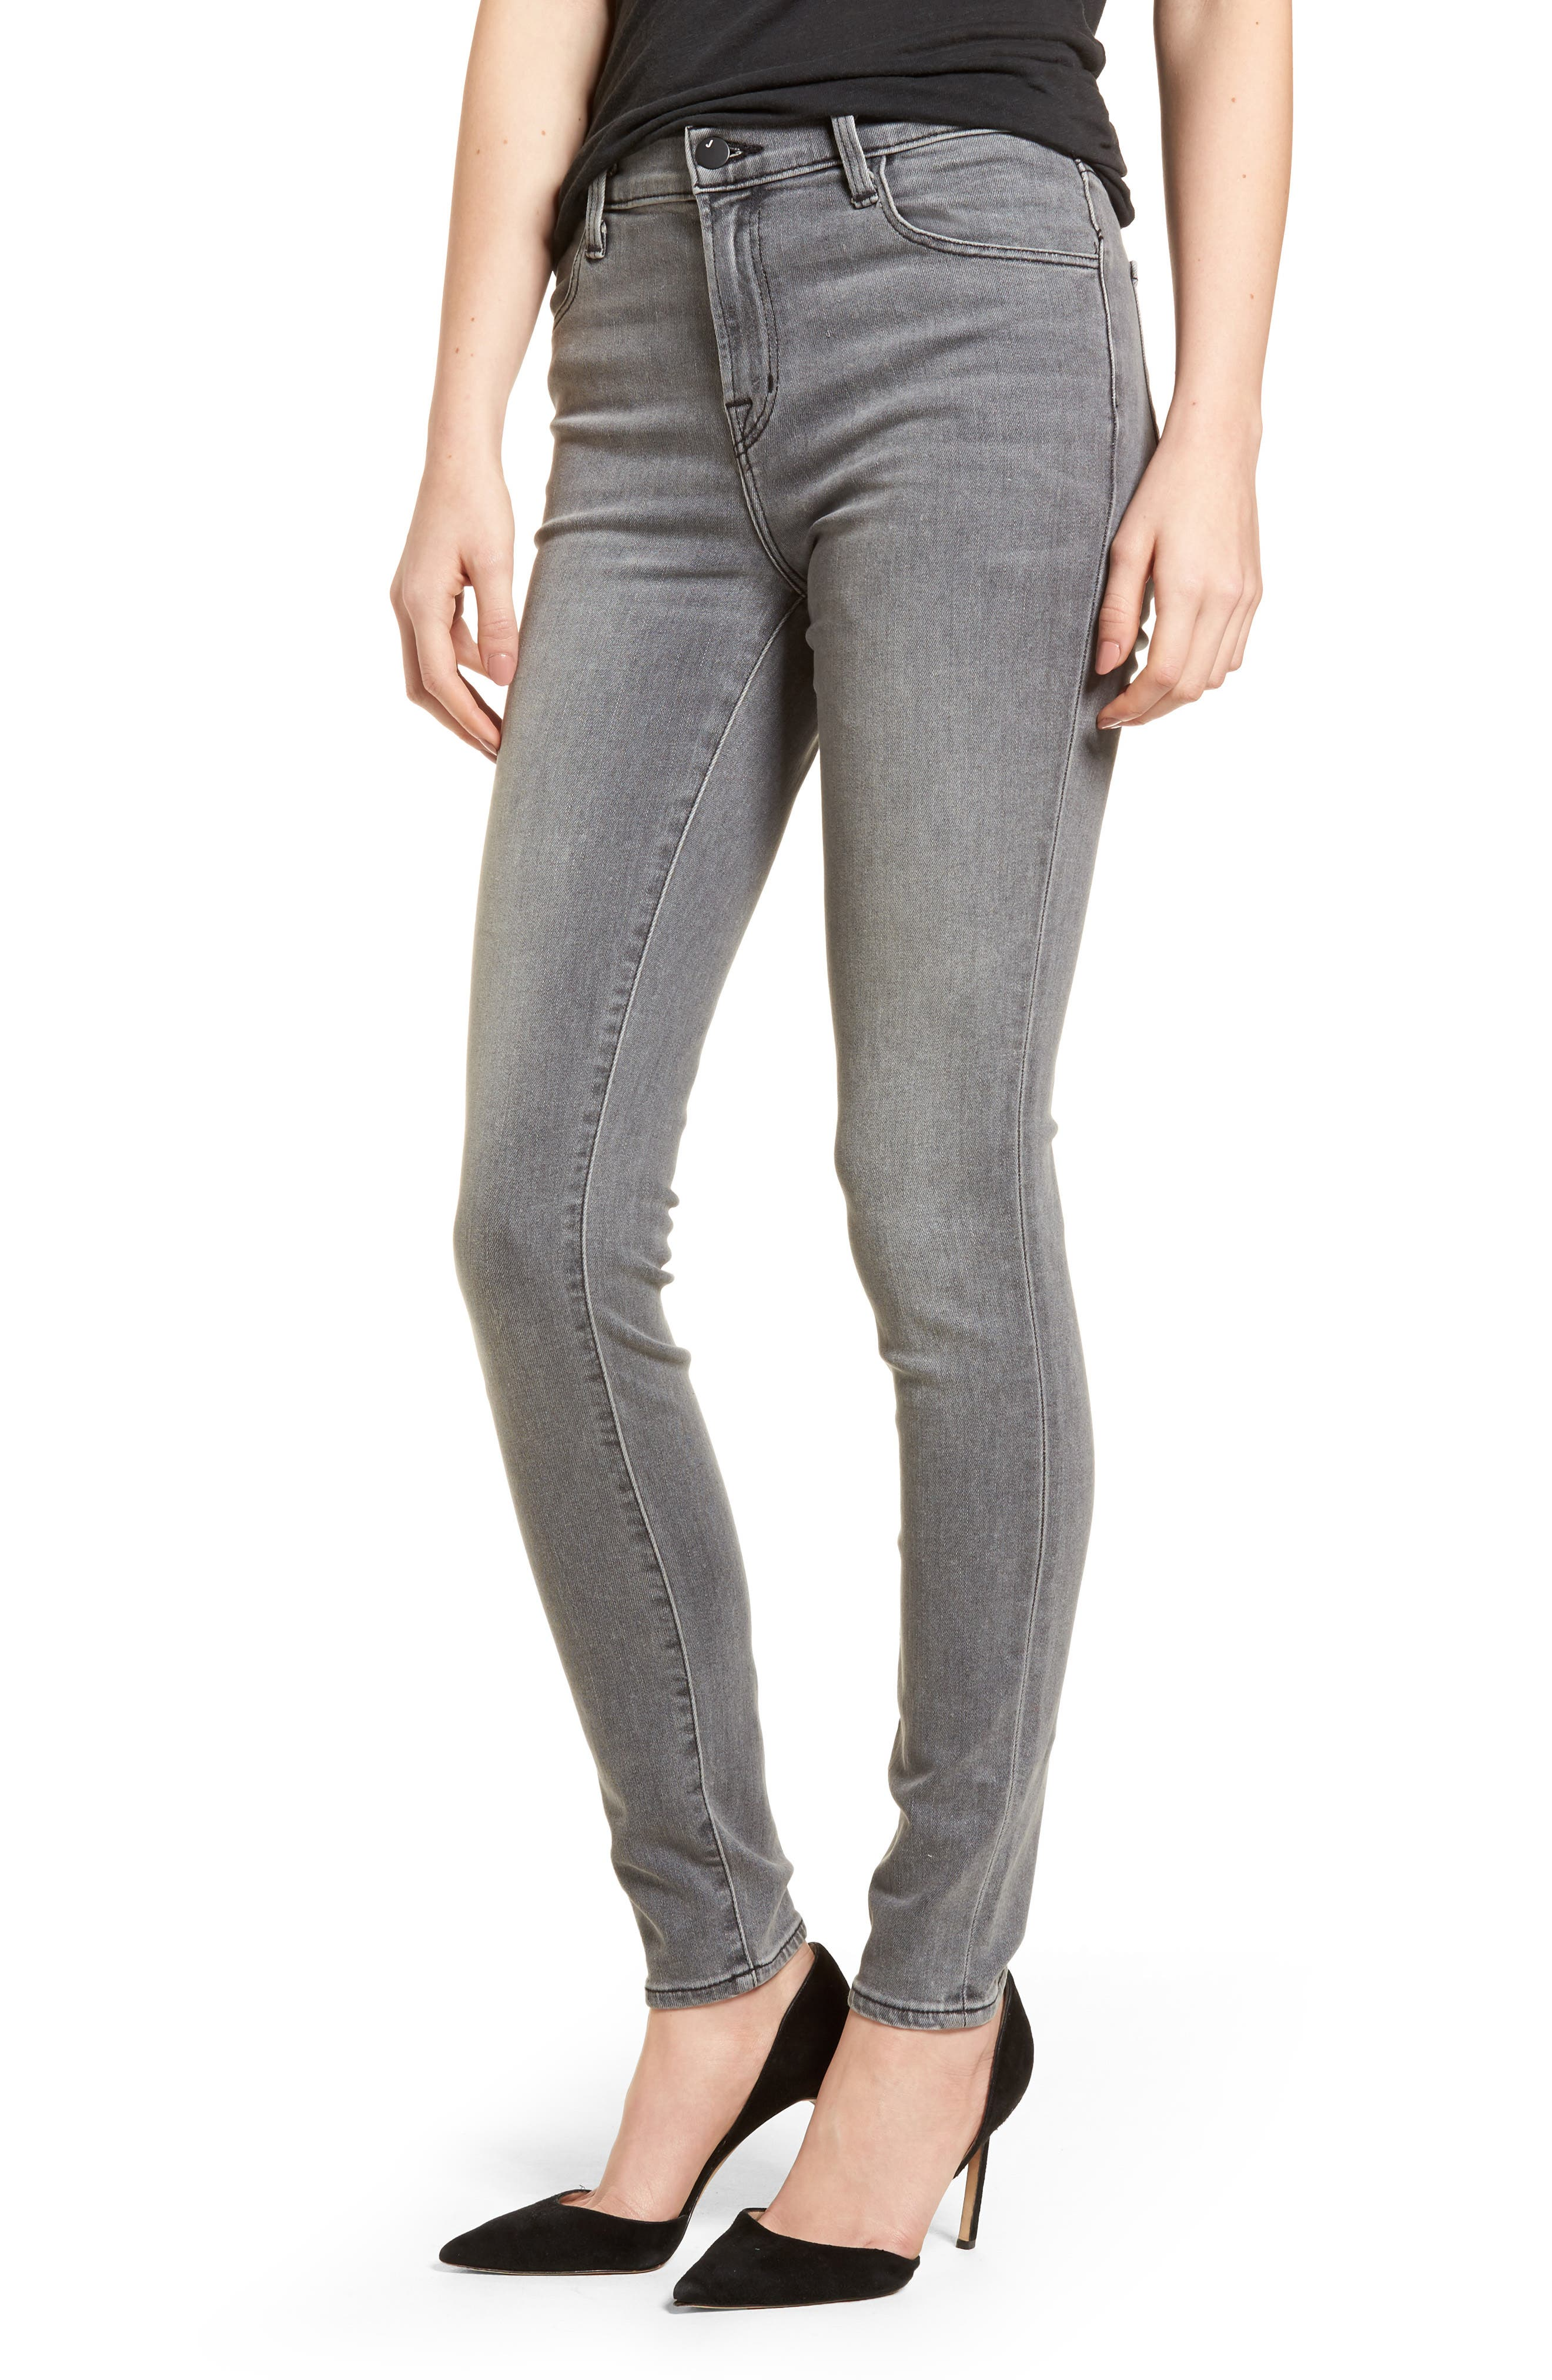 Alternate Image 1 Selected - J Brand Maria High Waist Skinny Jeans (Pebble) (Nordstrom Exclusive)